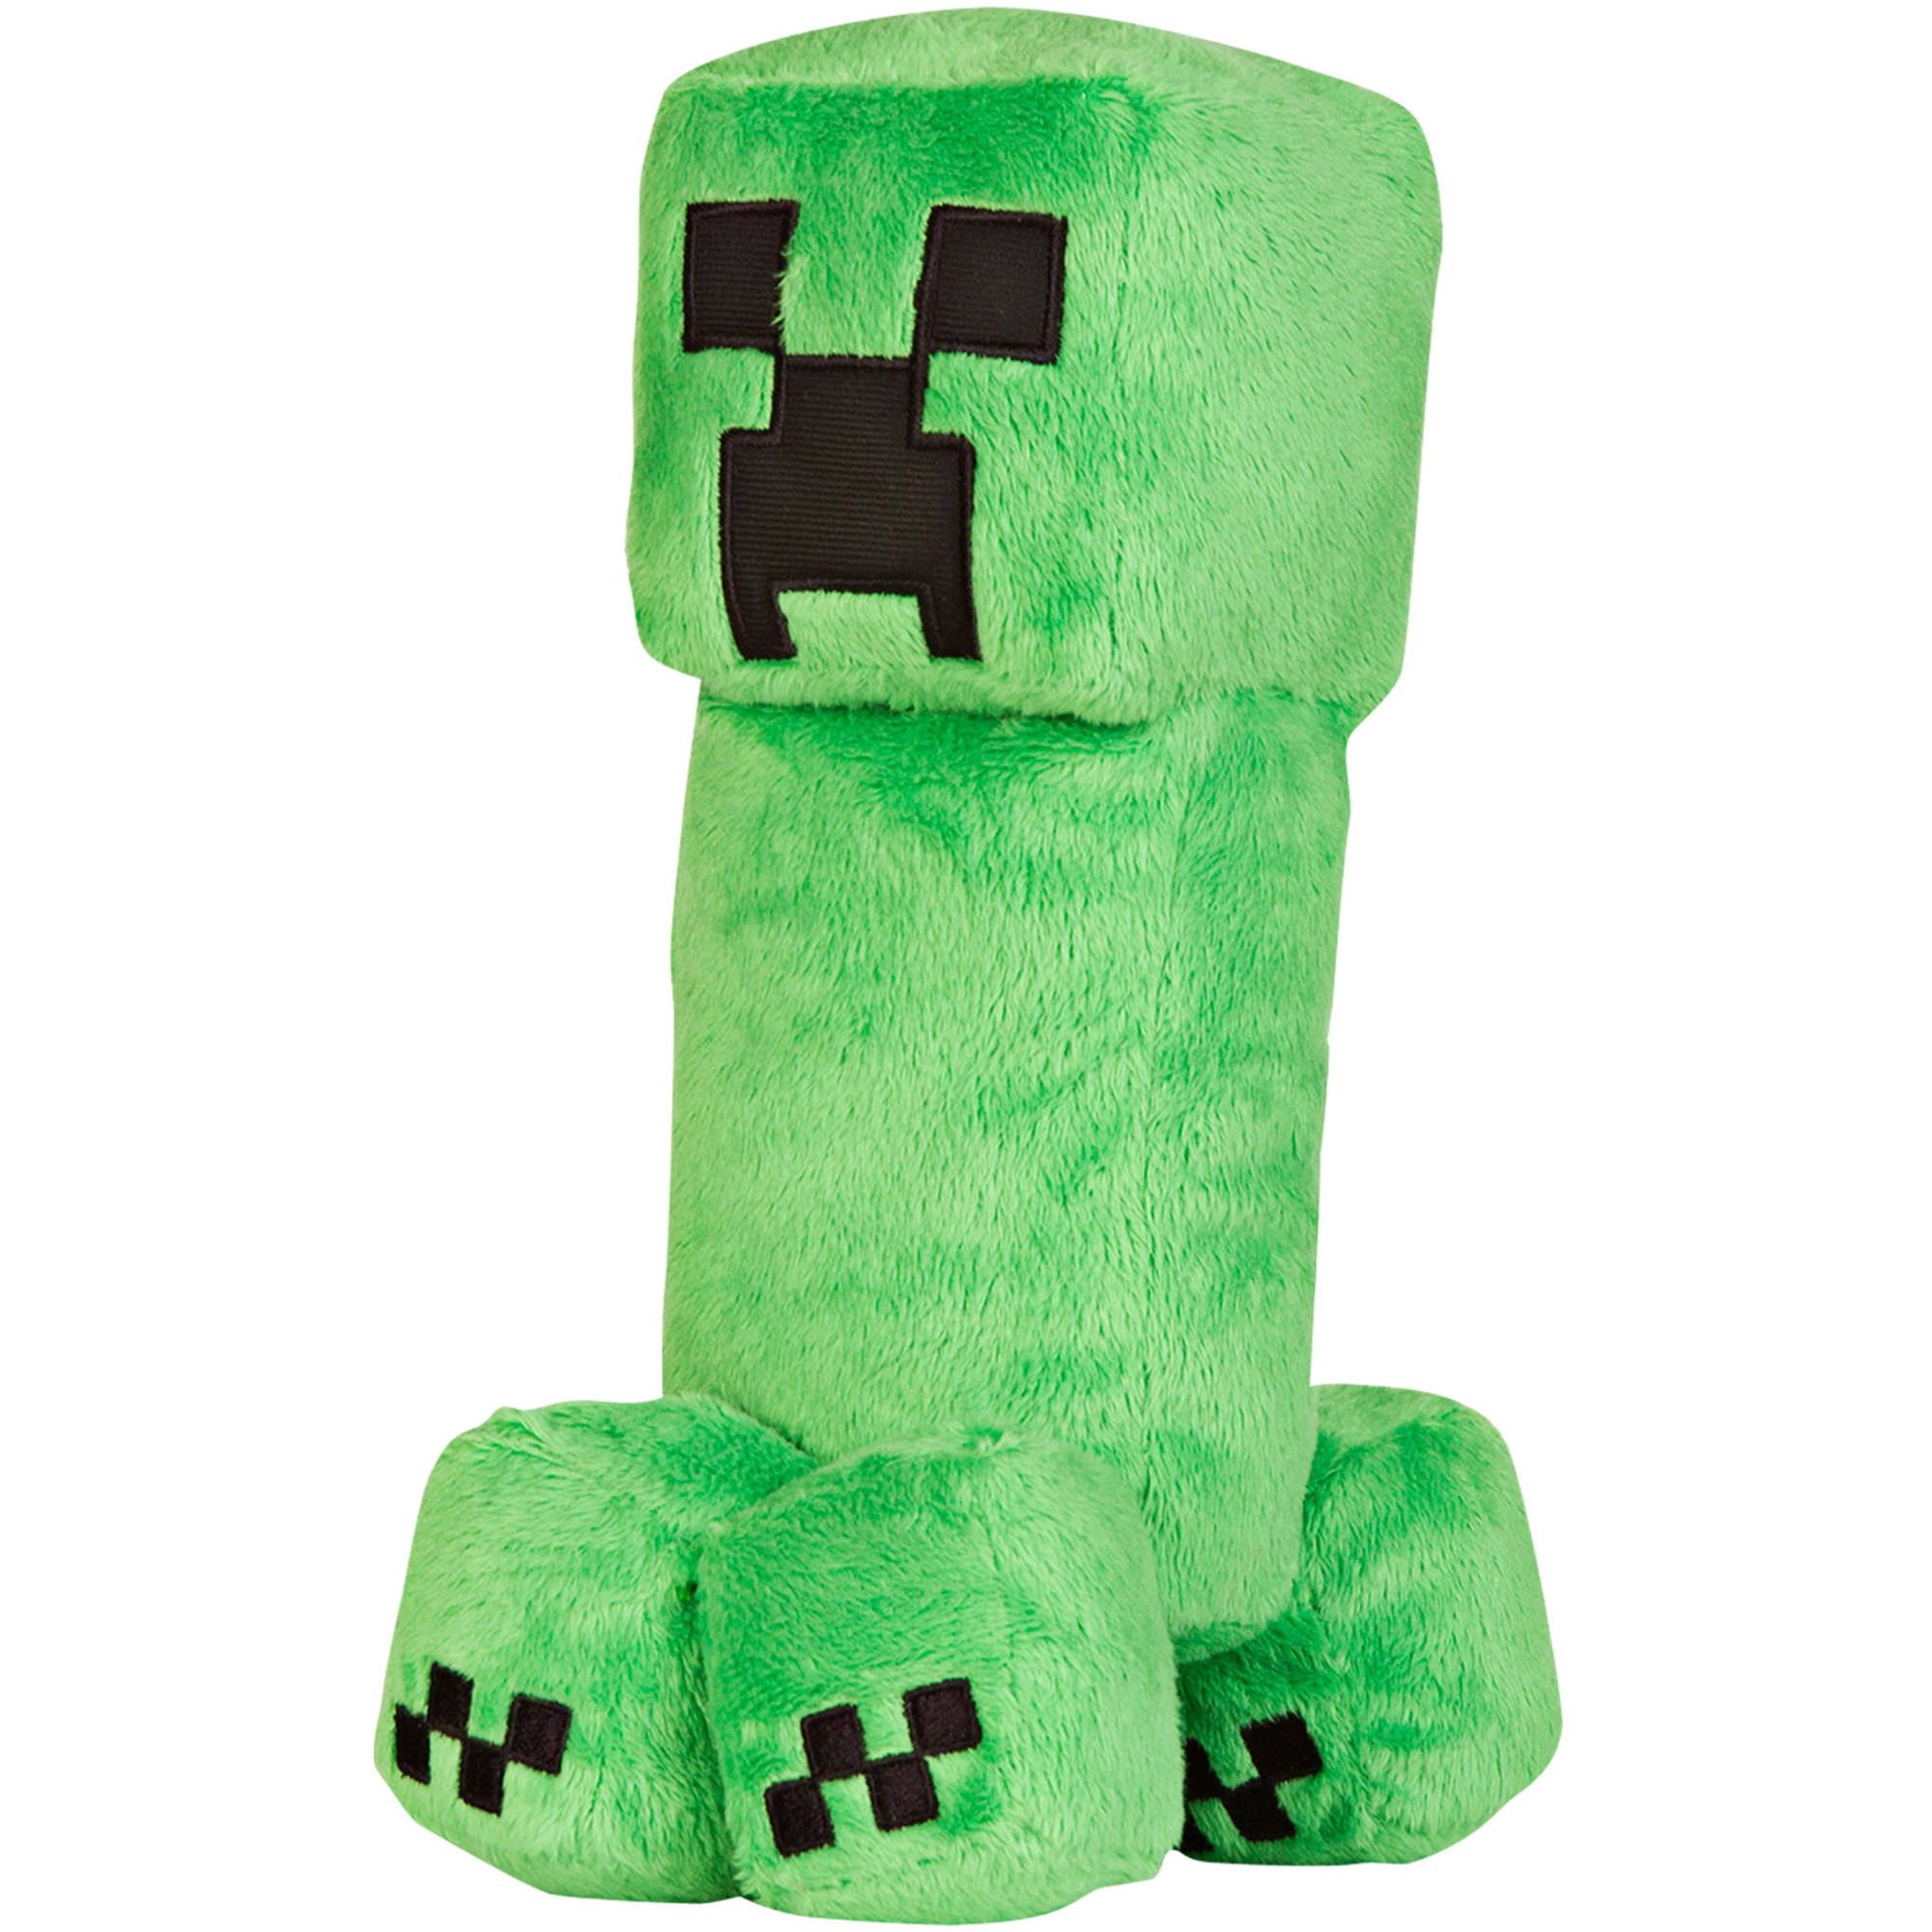 Minecraft Medium Plush, Creeper